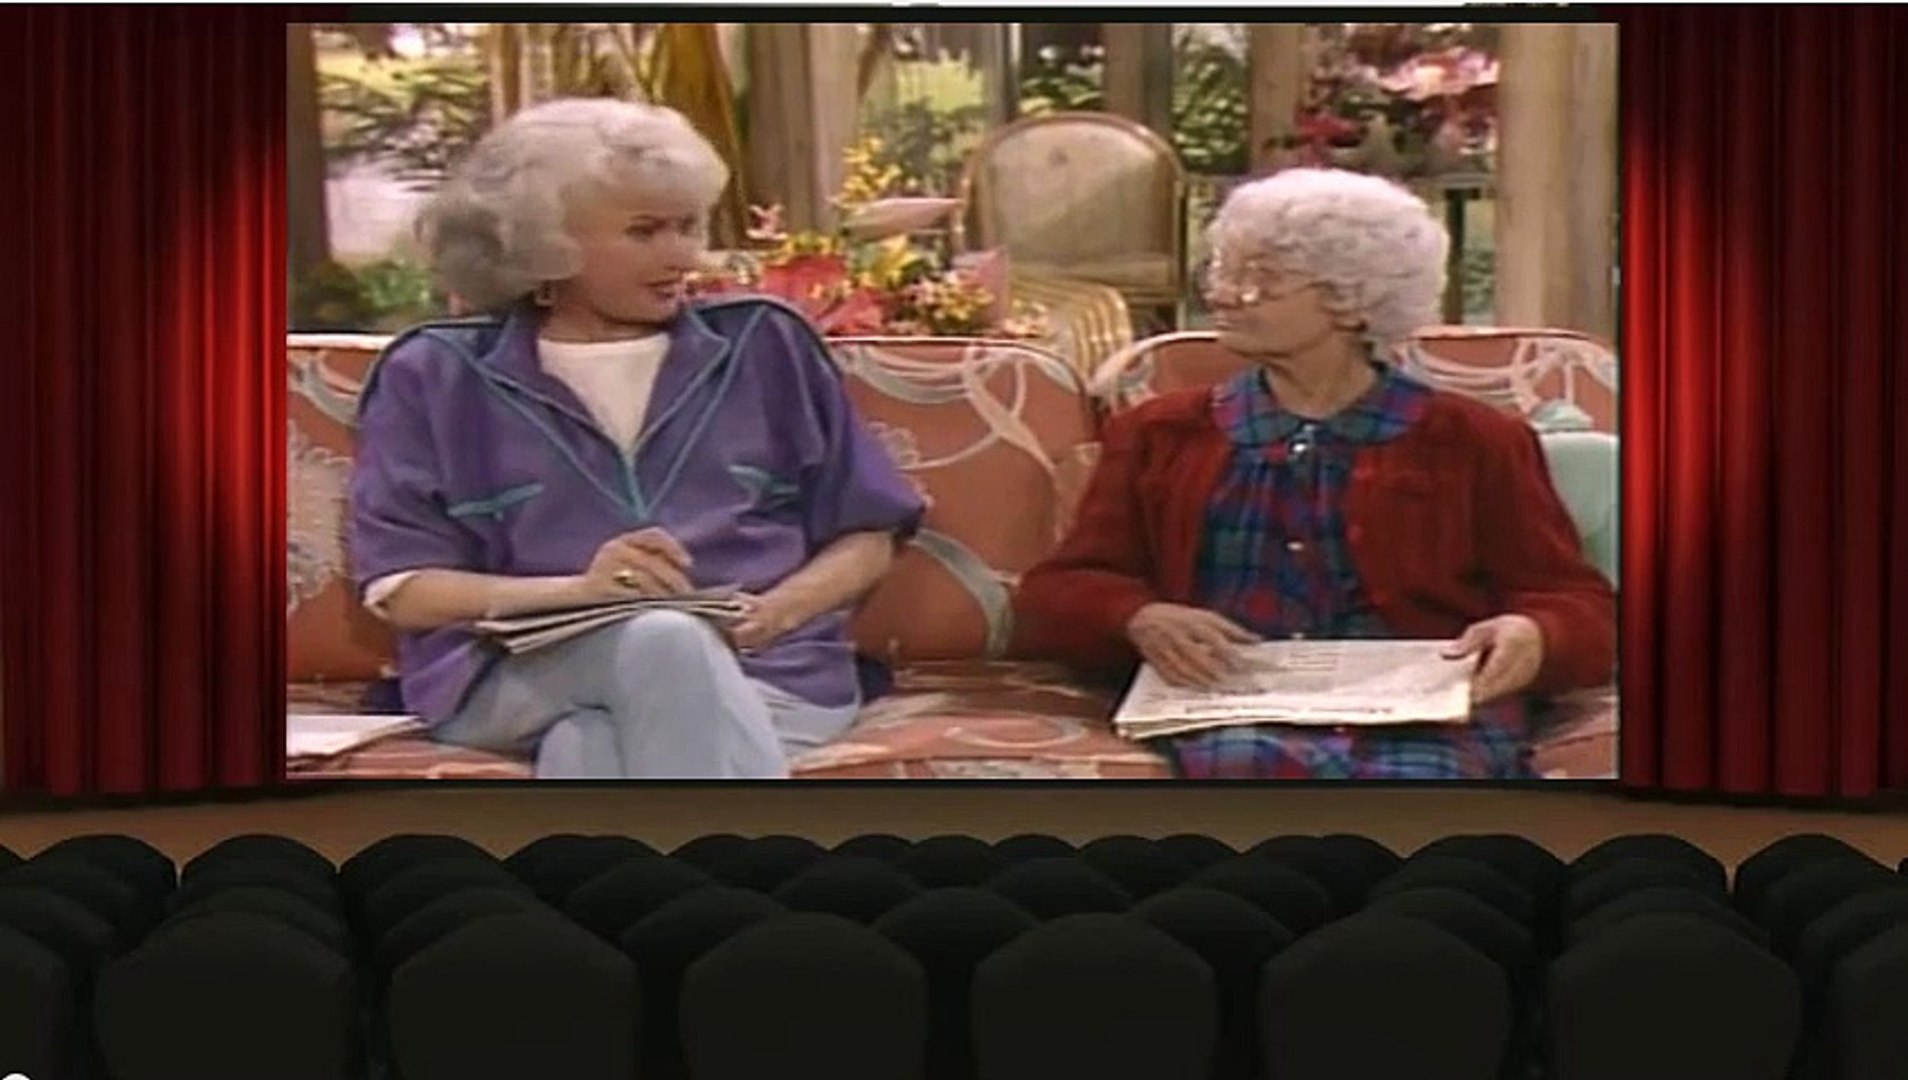 The Golden Girls - S 5 E 25 - The Presidents Coming! The Presidents Coming! (1)